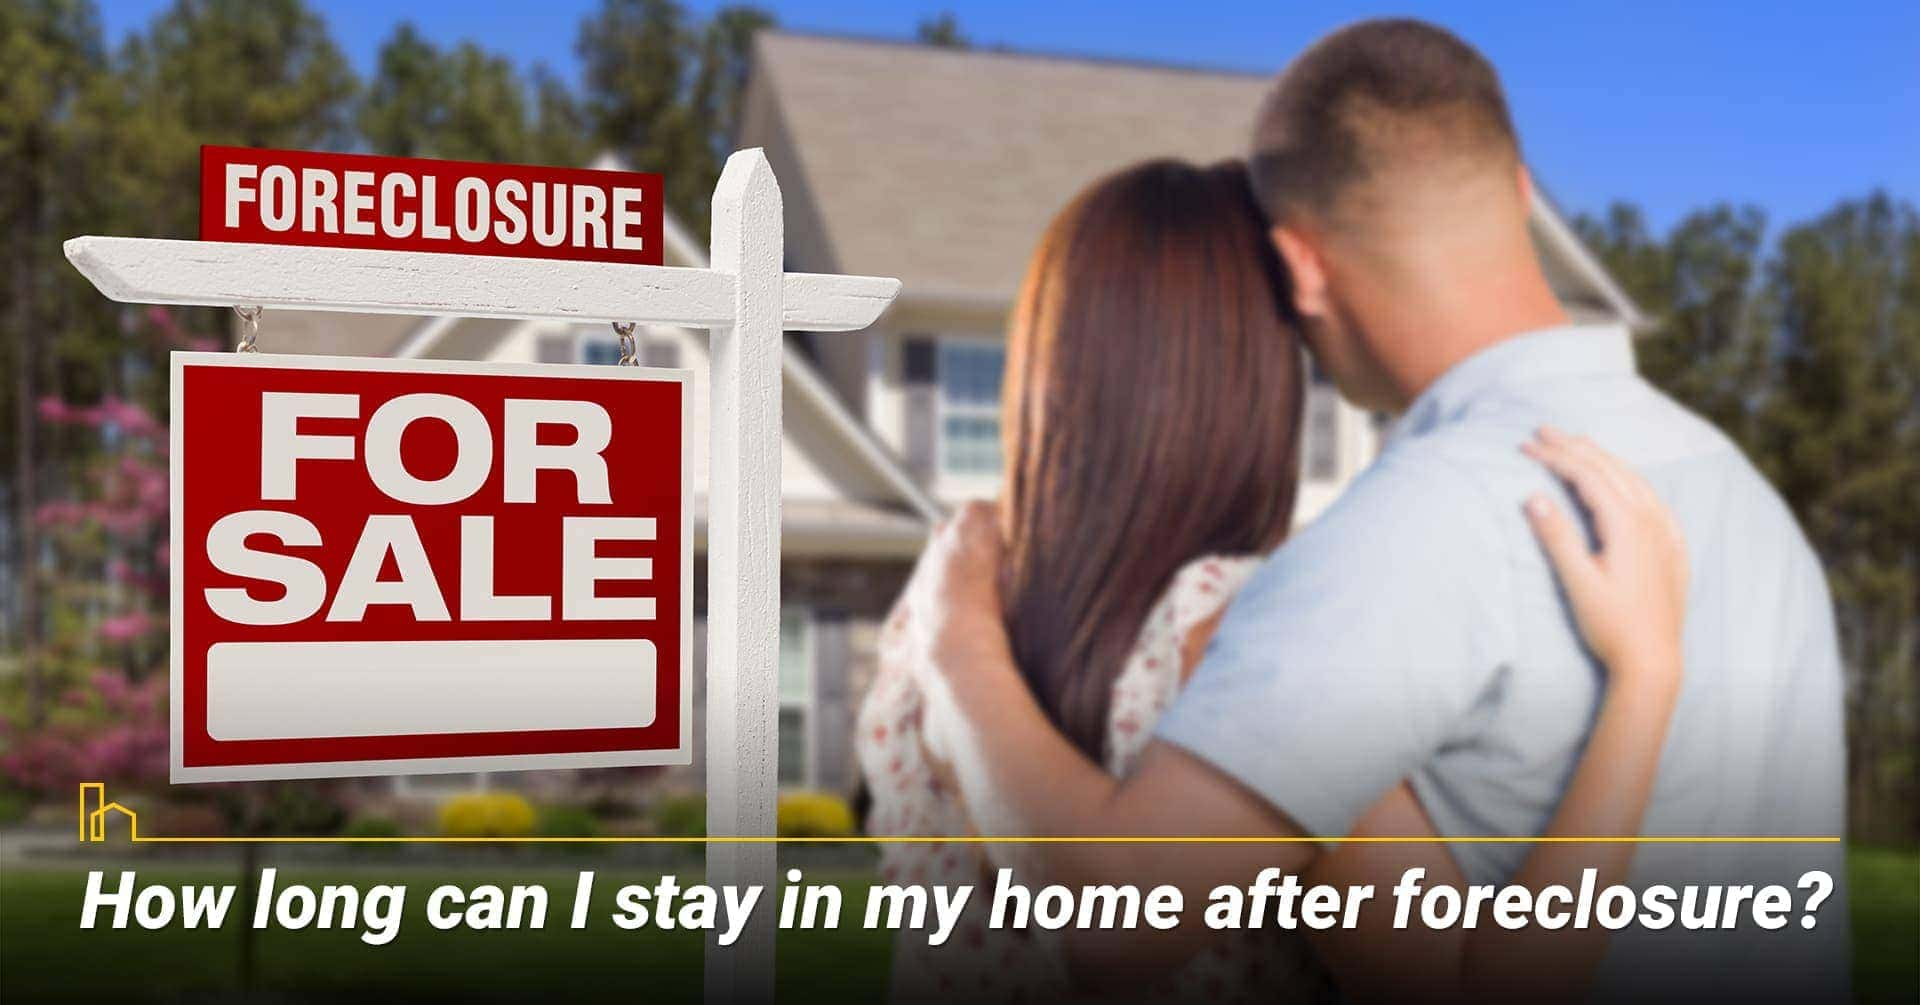 How long can I stay in my home after foreclosure? stay in your home during the foreclosure process